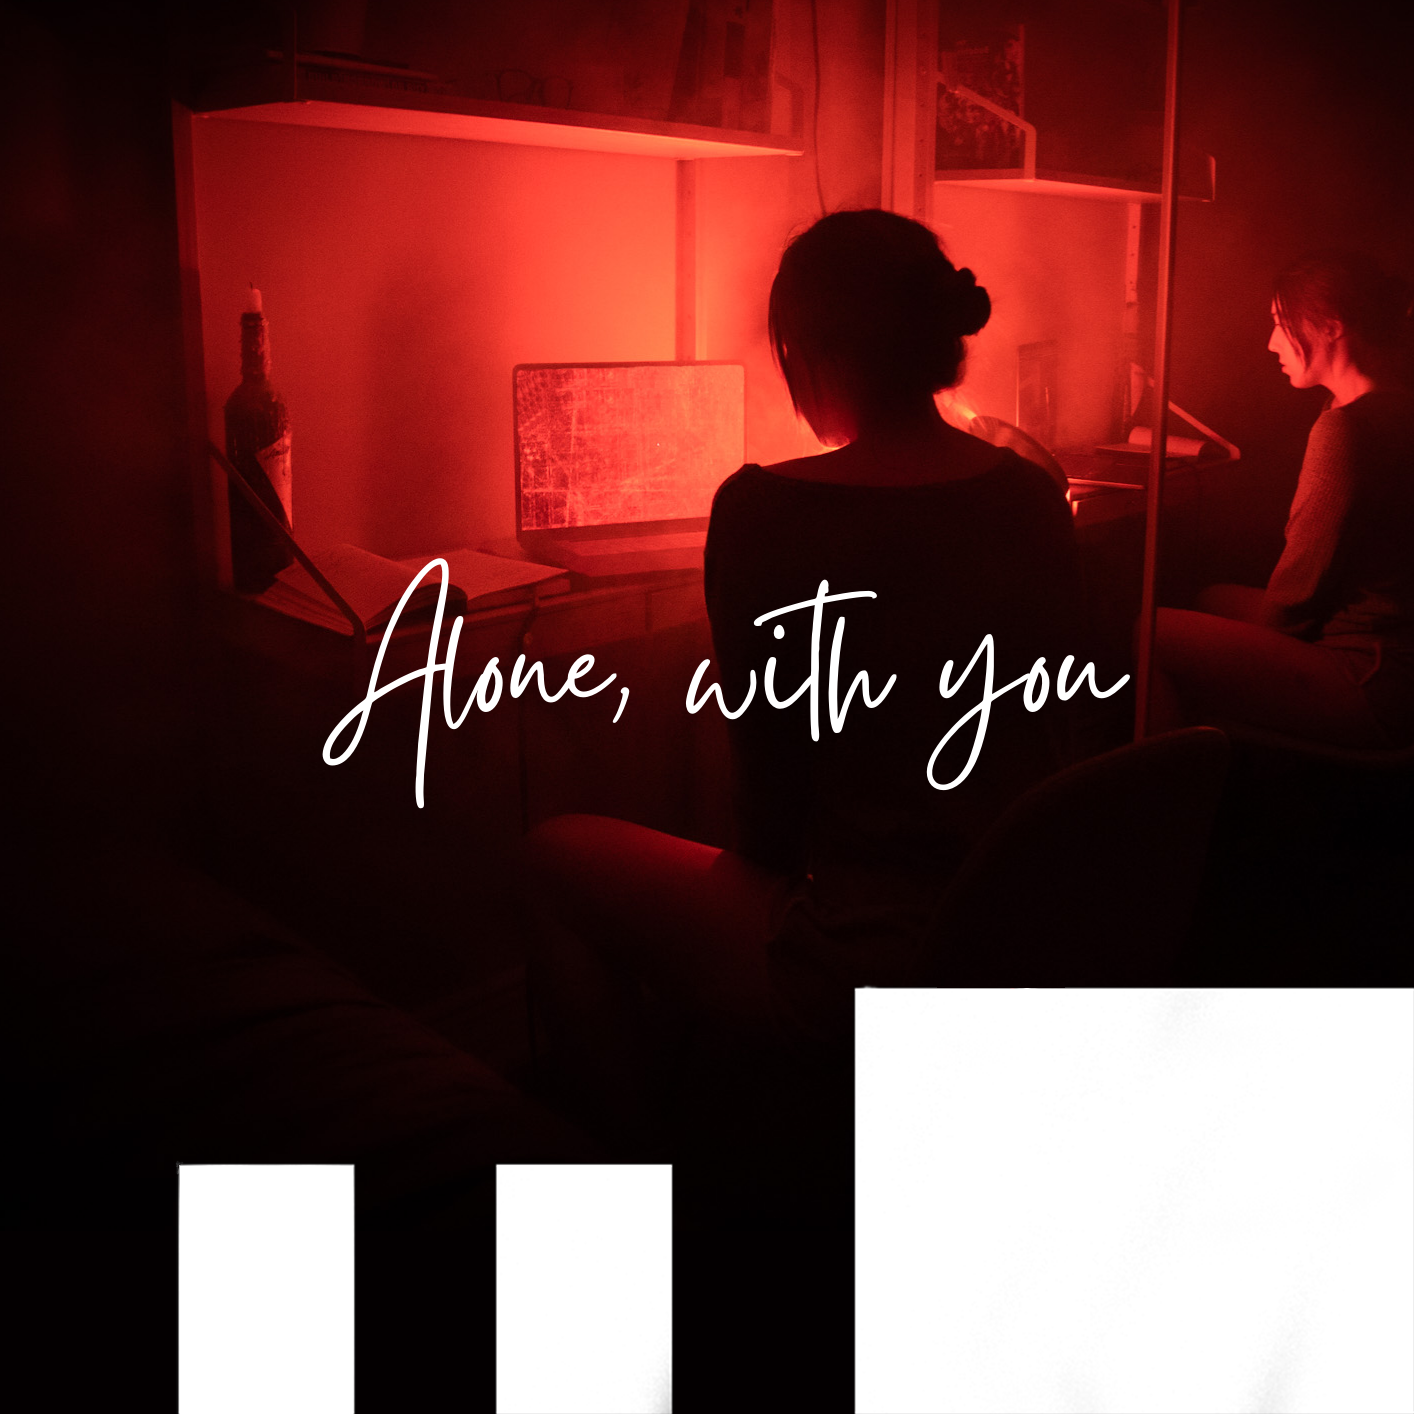 Alone, with you